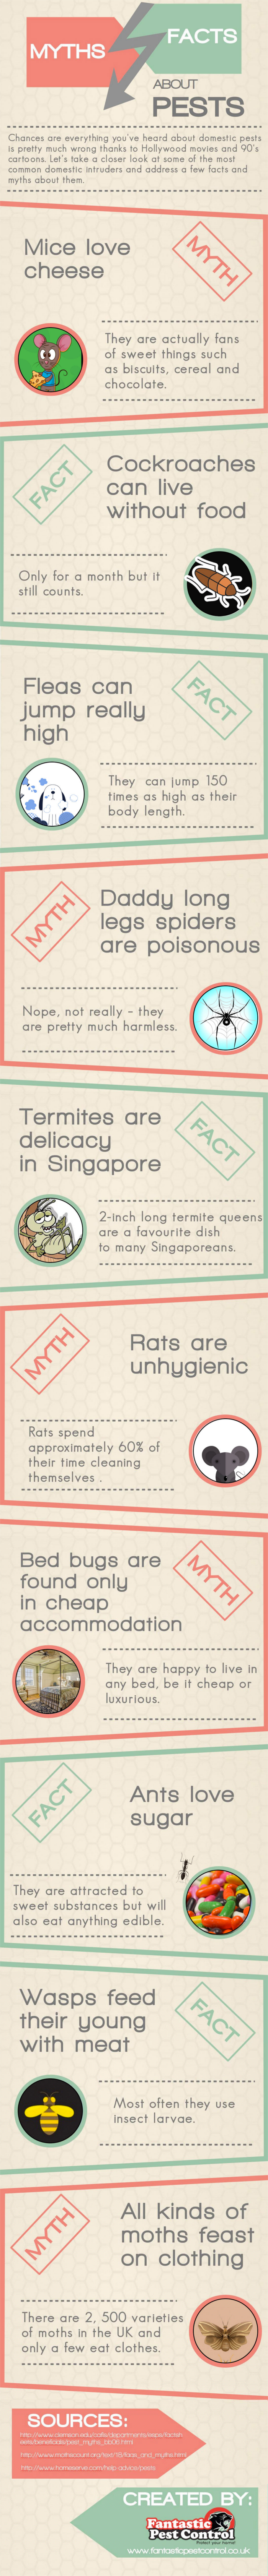 myths about pests infographic